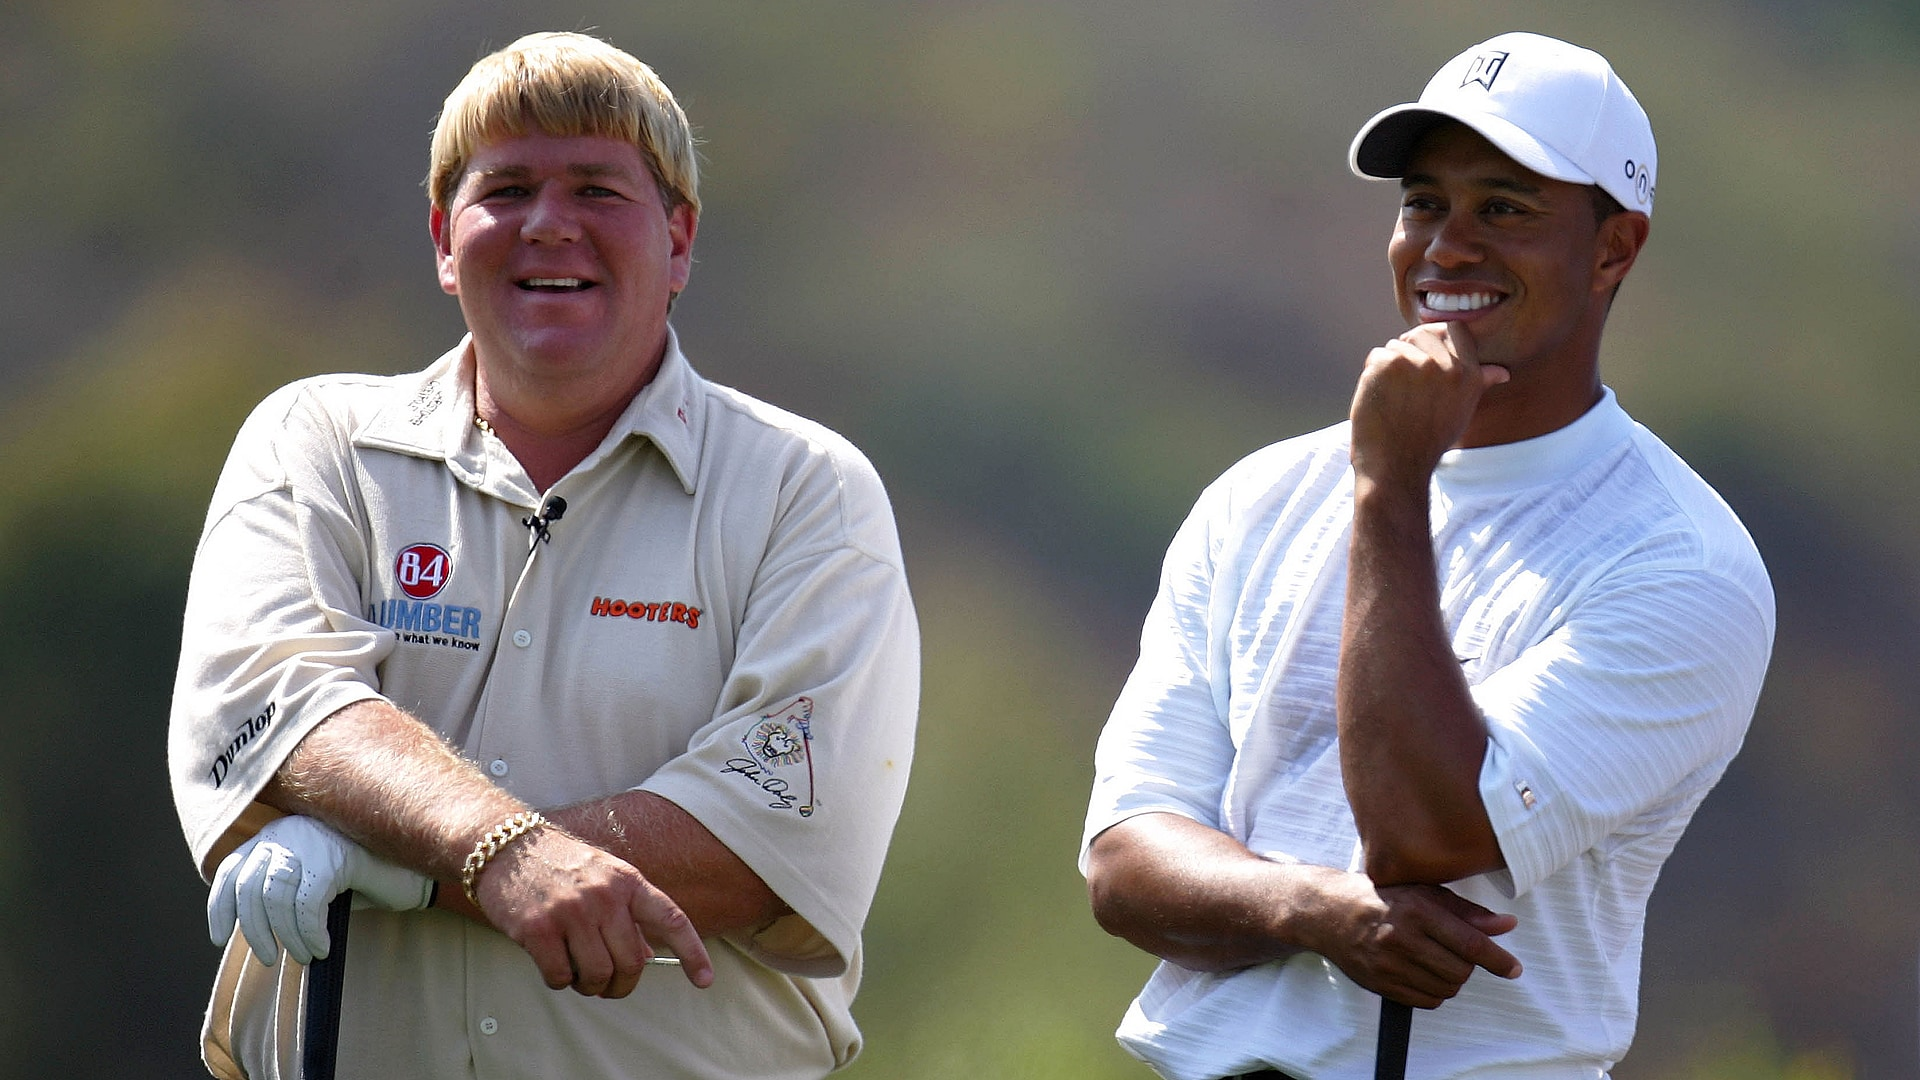 b22013b09ff8d John Daly recalls time he asked Tiger Woods to join him for a beer ...